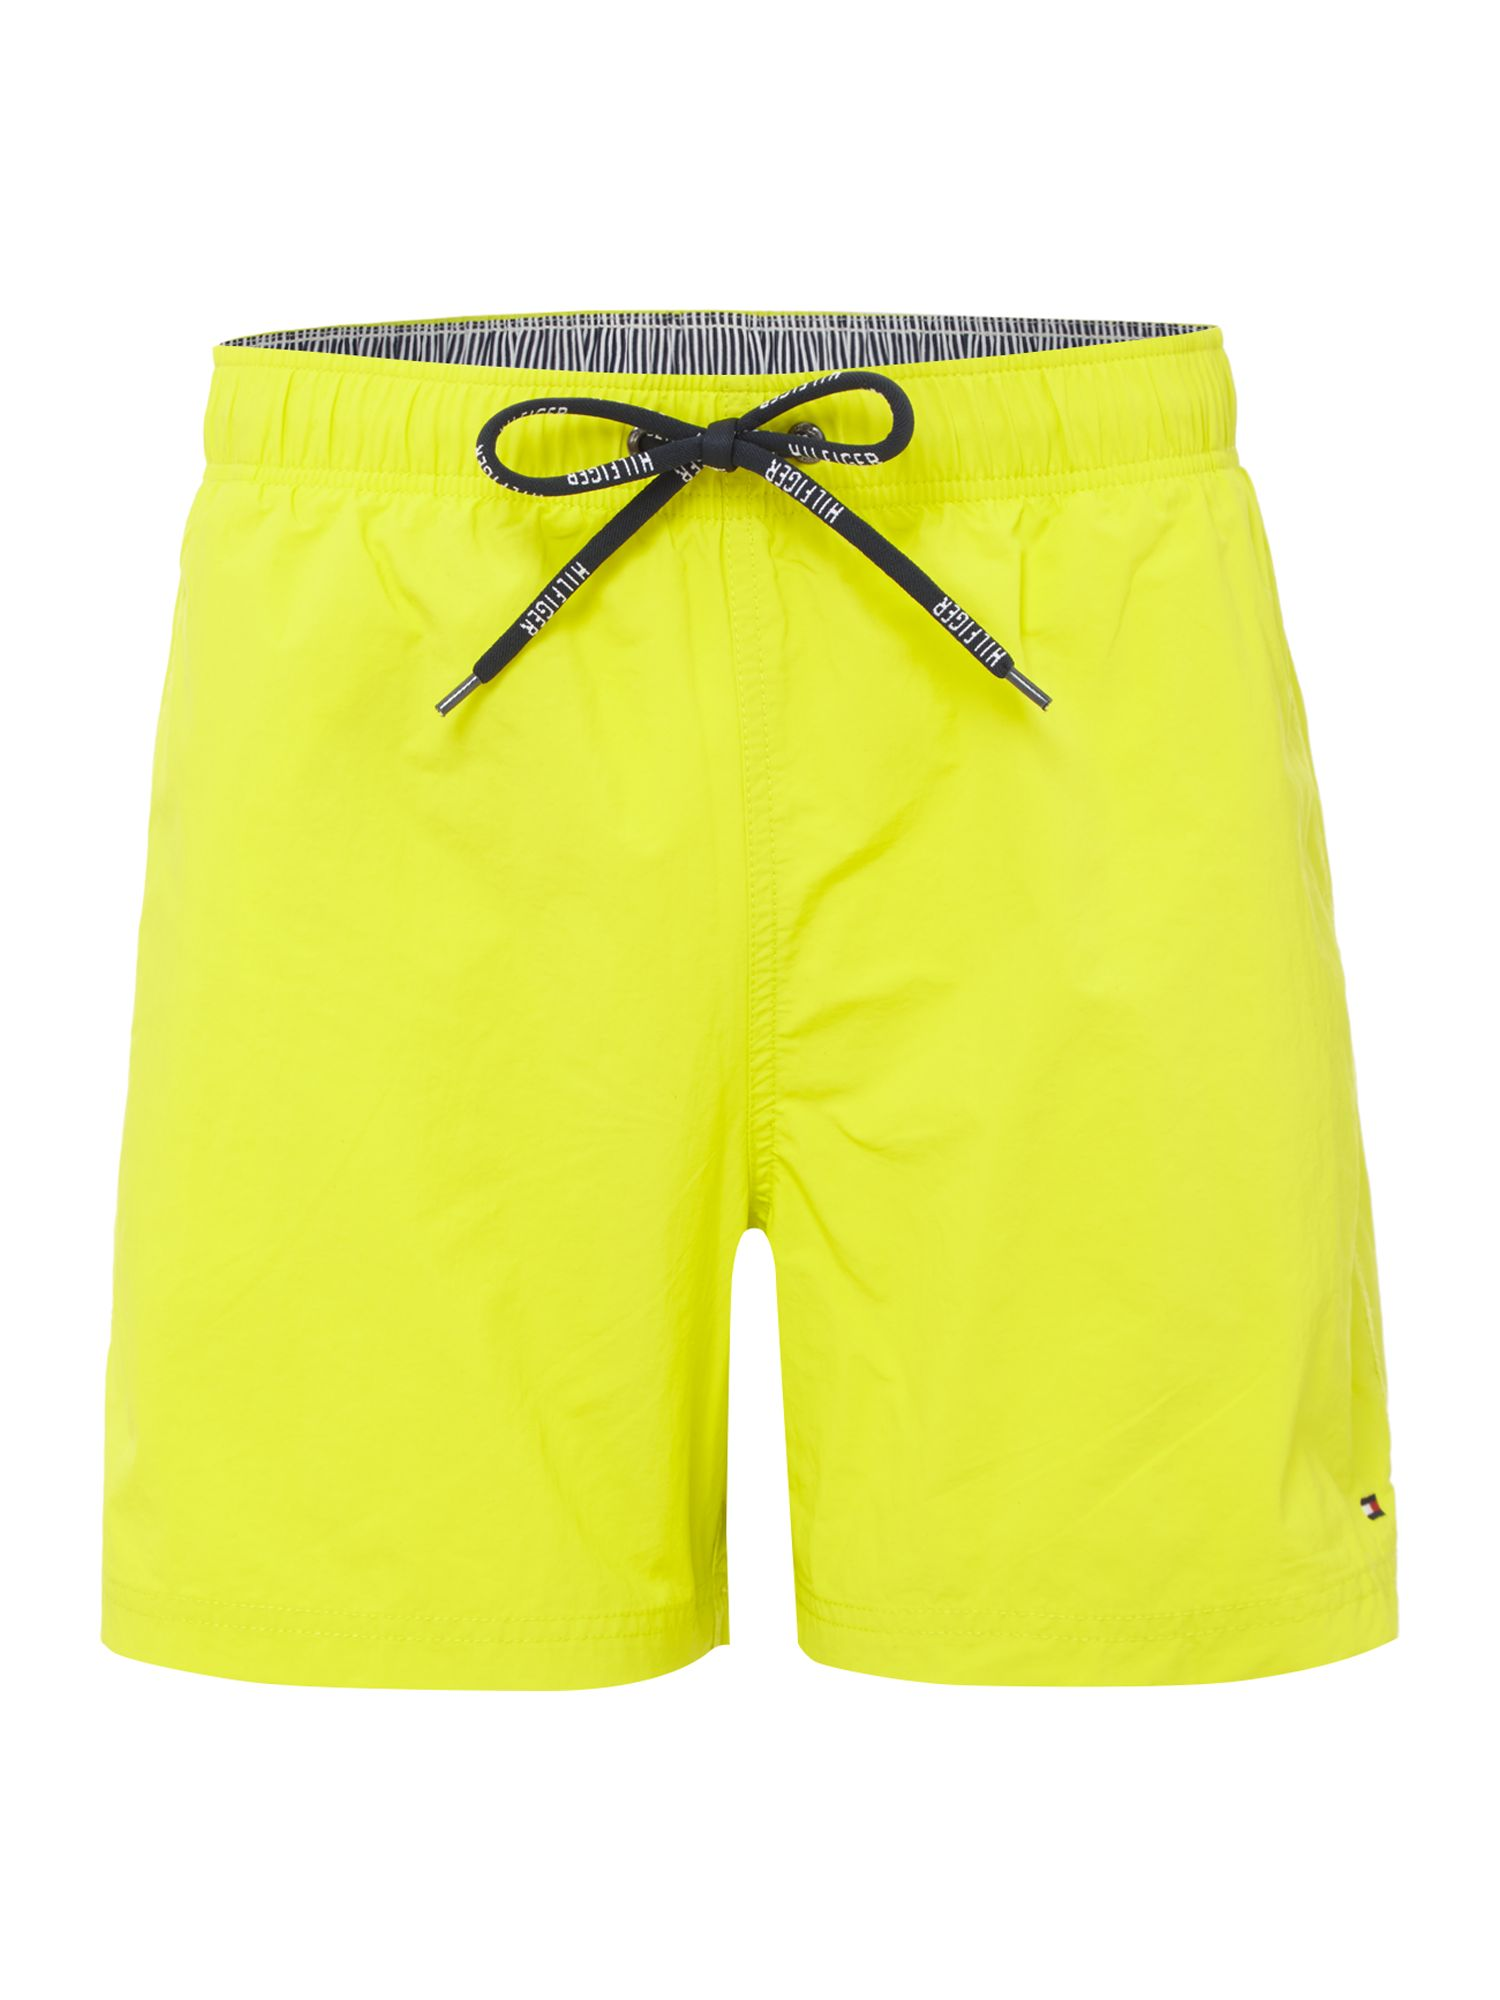 Men's Tommy Hilfiger Swim Shorts, Yellow